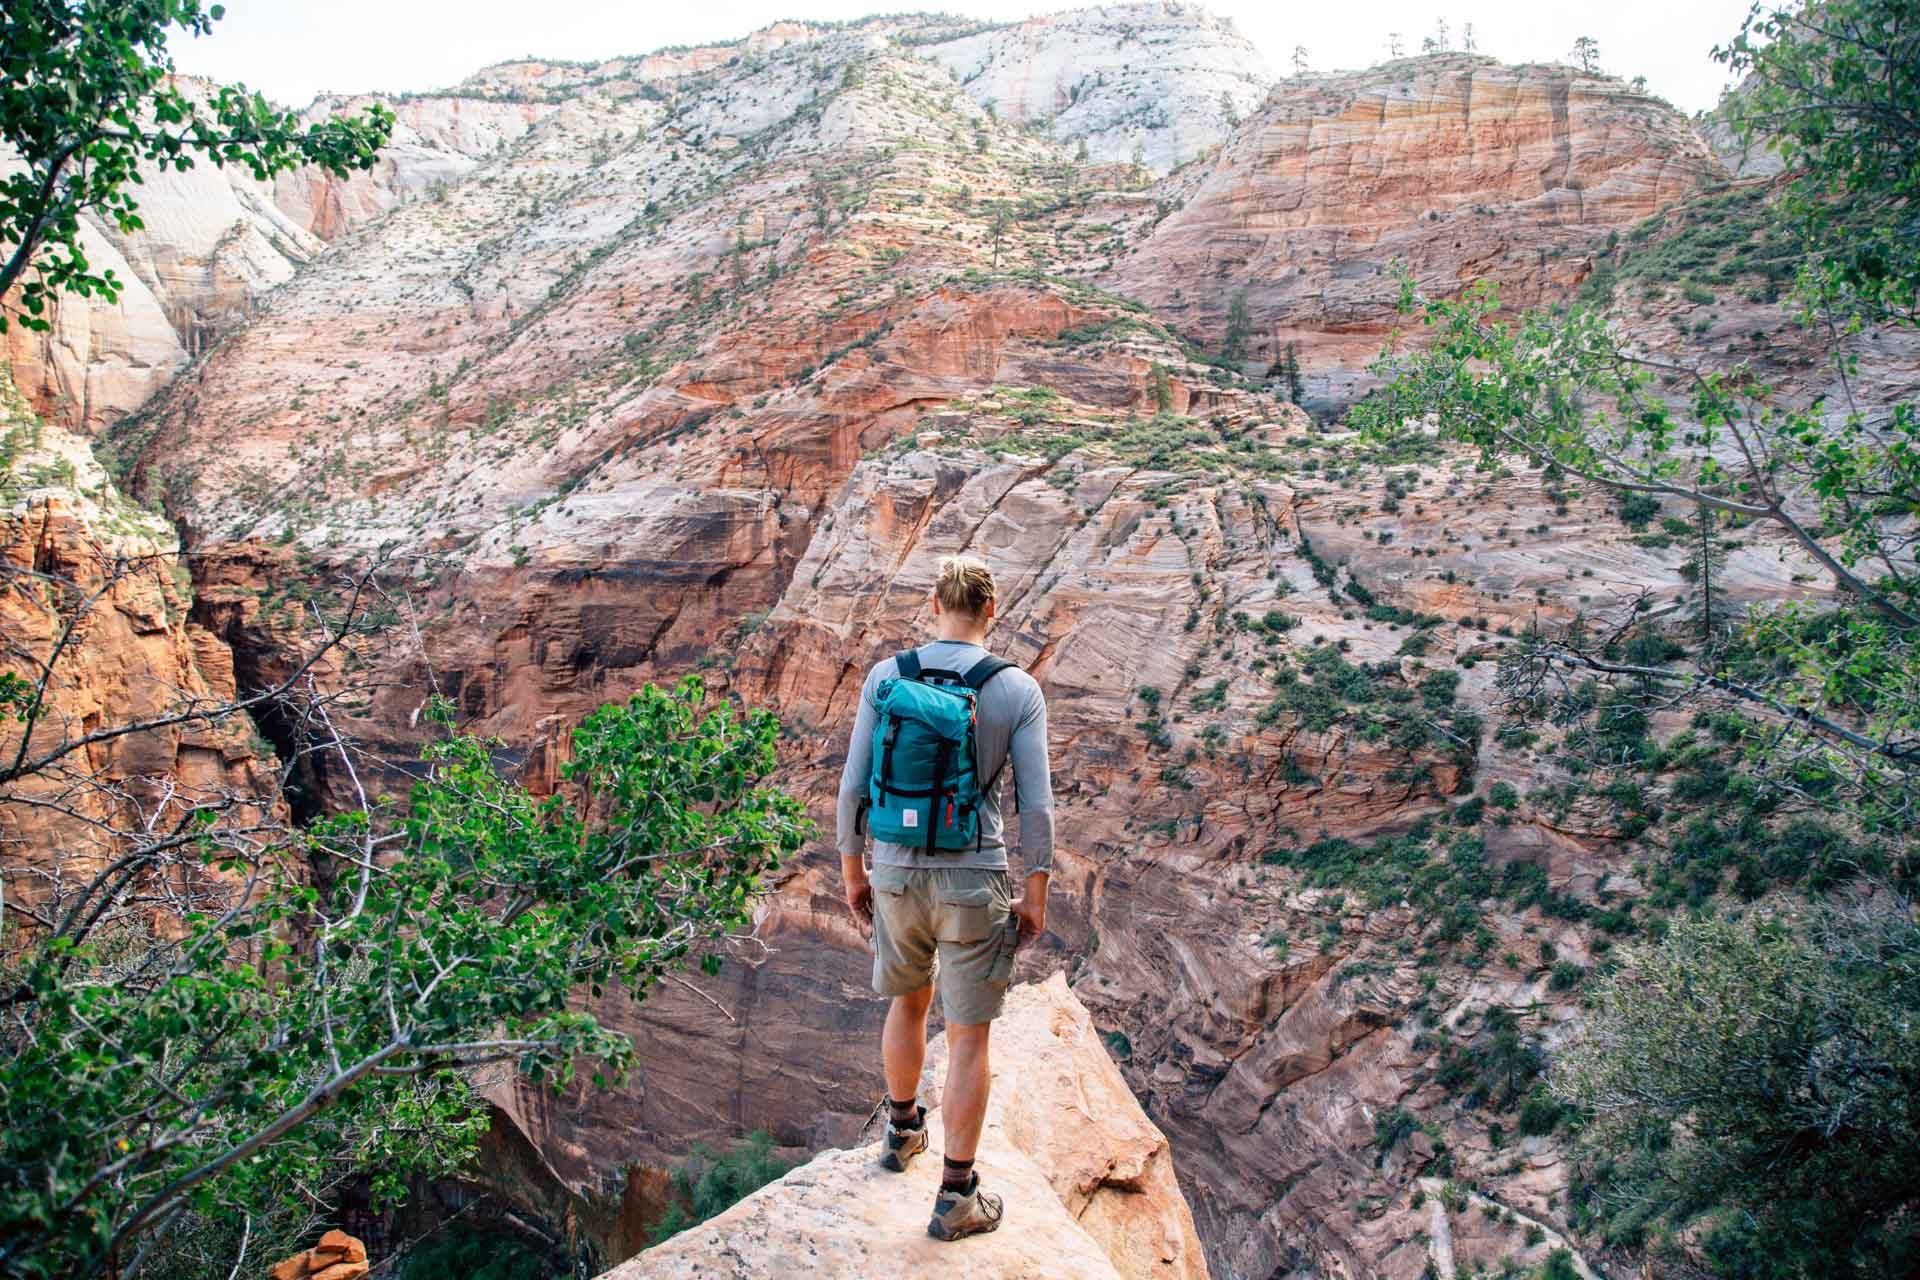 Looking to find some solidude in one of the most popular US National Parks? Check out these 4 hikes in Zion, where we found splendor without the crowds.